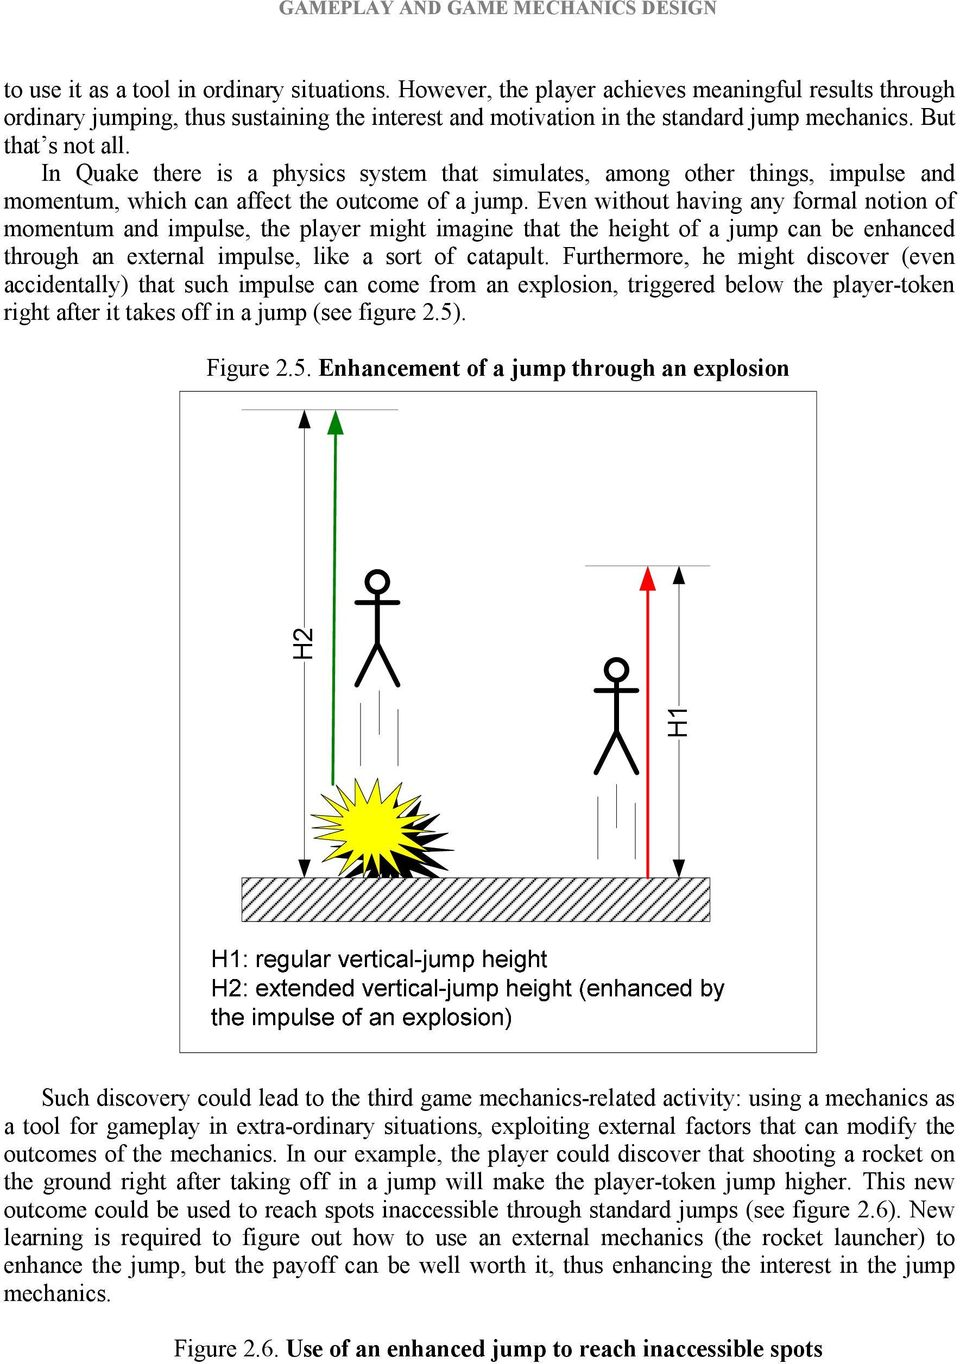 Even without having any formal notion of momentum and impulse, the player might imagine that the height of a jump can be enhanced through an external impulse, like a sort of catapult.